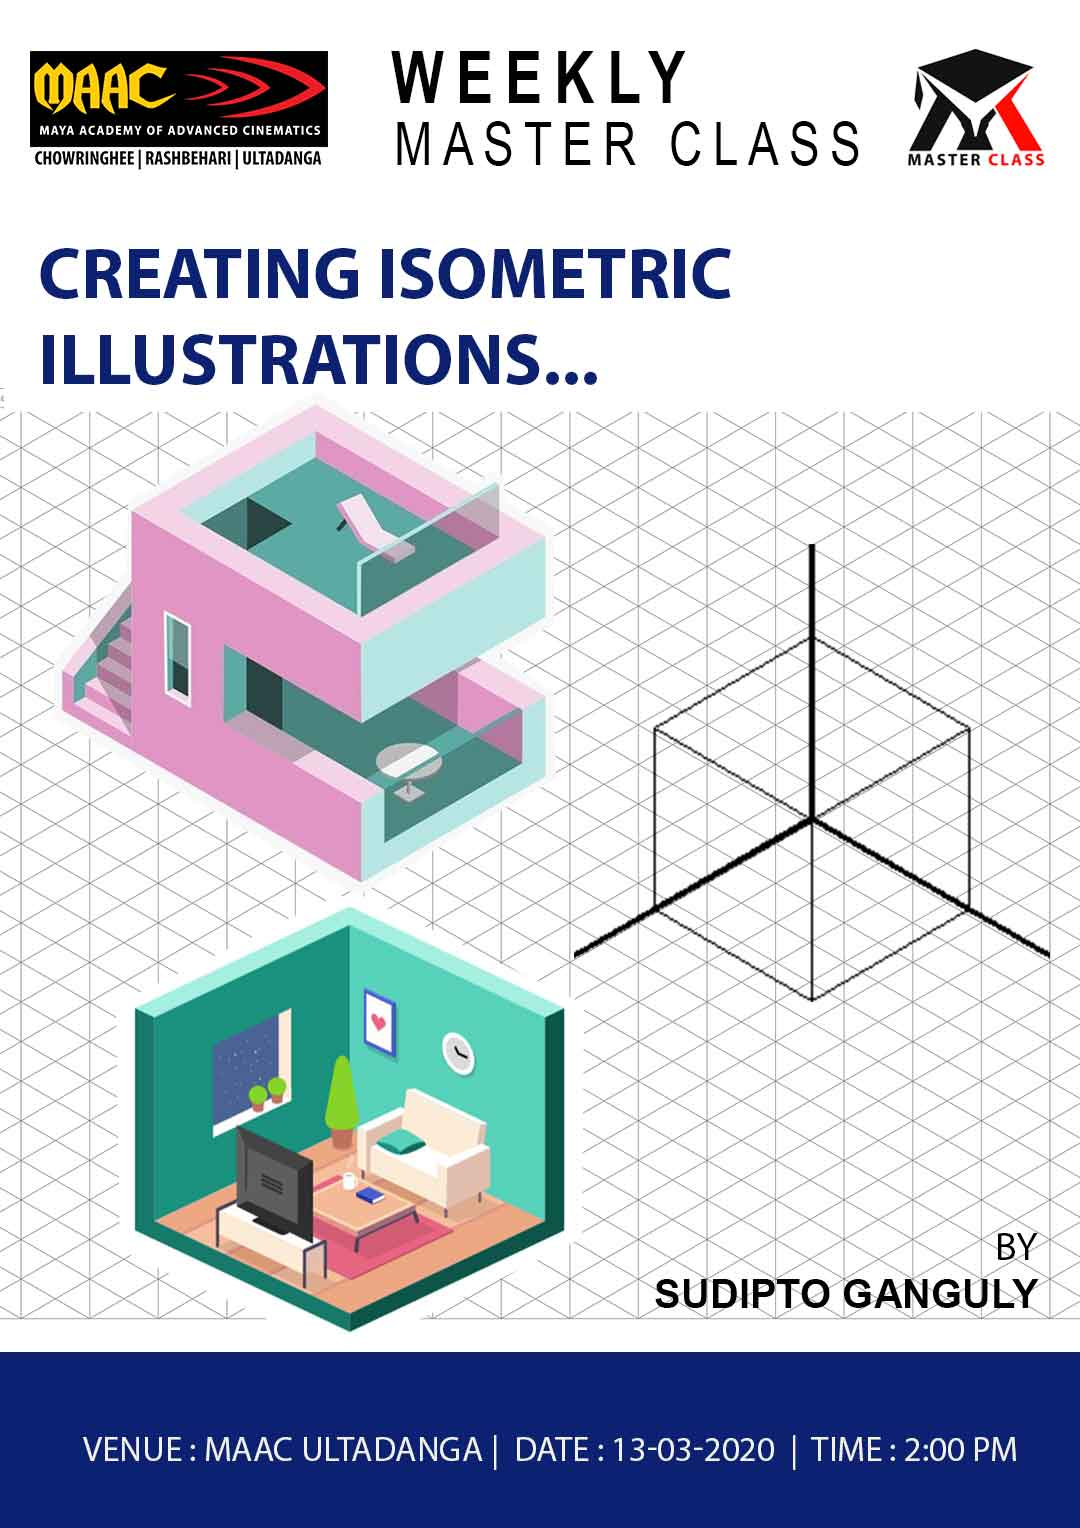 Weekly Master Class on Creating Isometric Illustrations